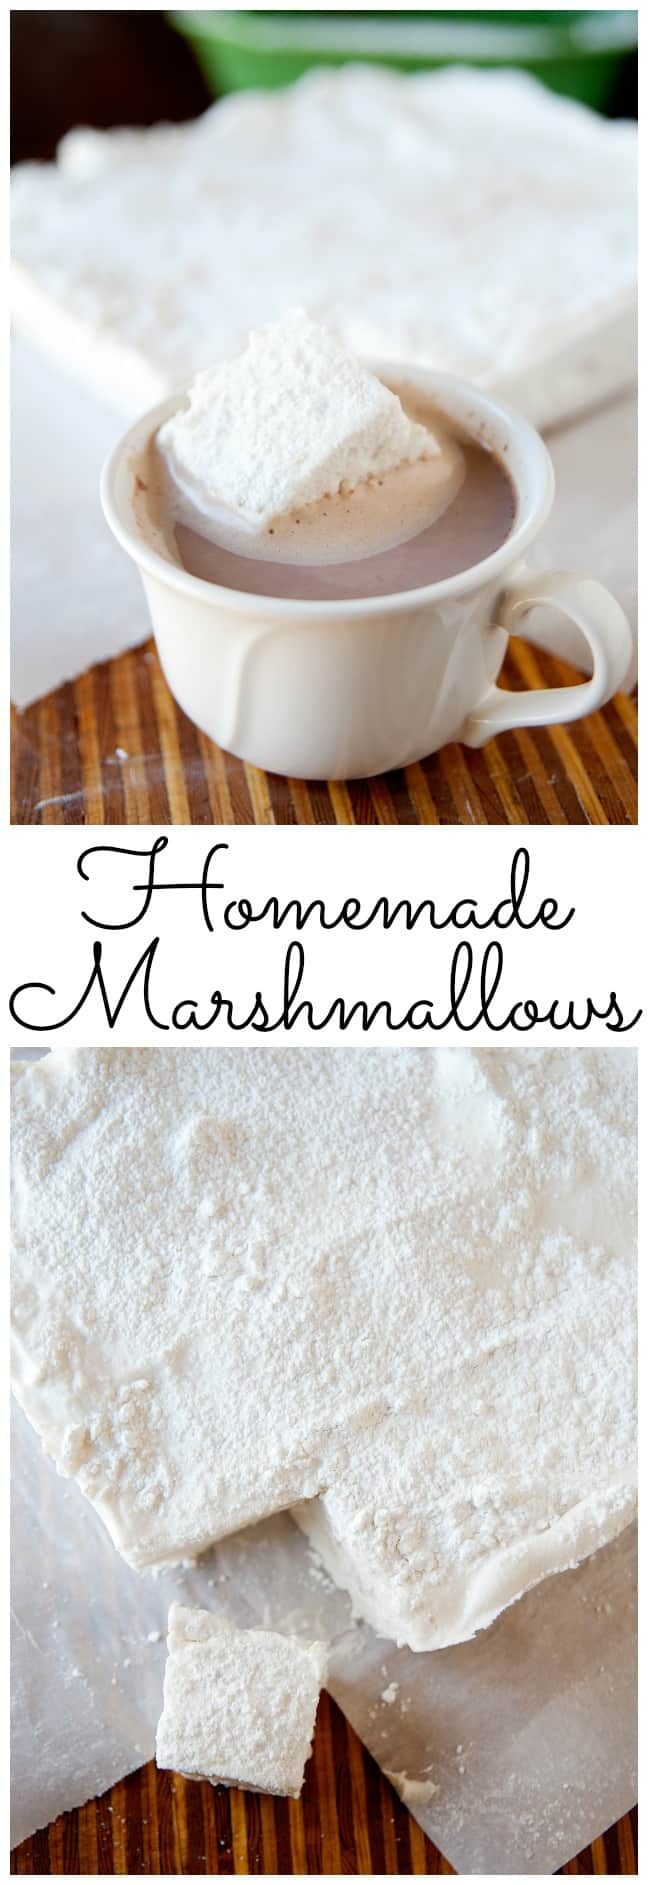 Homemade Marshmallows (no corn syrup!) from LauraFuentes.com